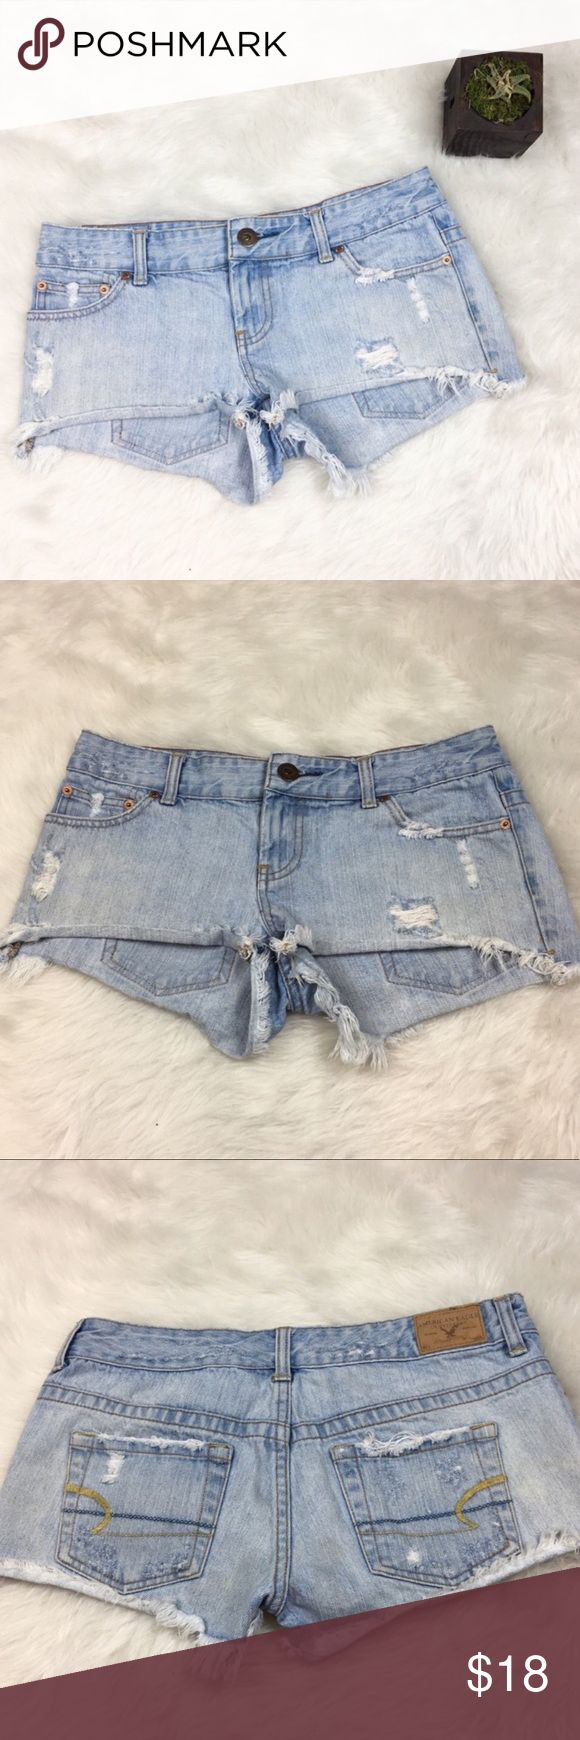 American Eagle Light Wash Cut Out Shorts American Eagle distressed light wash cut off shorts. Size 2 with 2' inseam. GUC with no major flaws and basic wear. ❌No trades ❌ Modeling ❌No PayPal or off Posh transactions ❤️ I 💕Bundles ❤️Reasonable Offers PLEASE ❤️ American Eagle Outfitters Shorts Jean Shorts